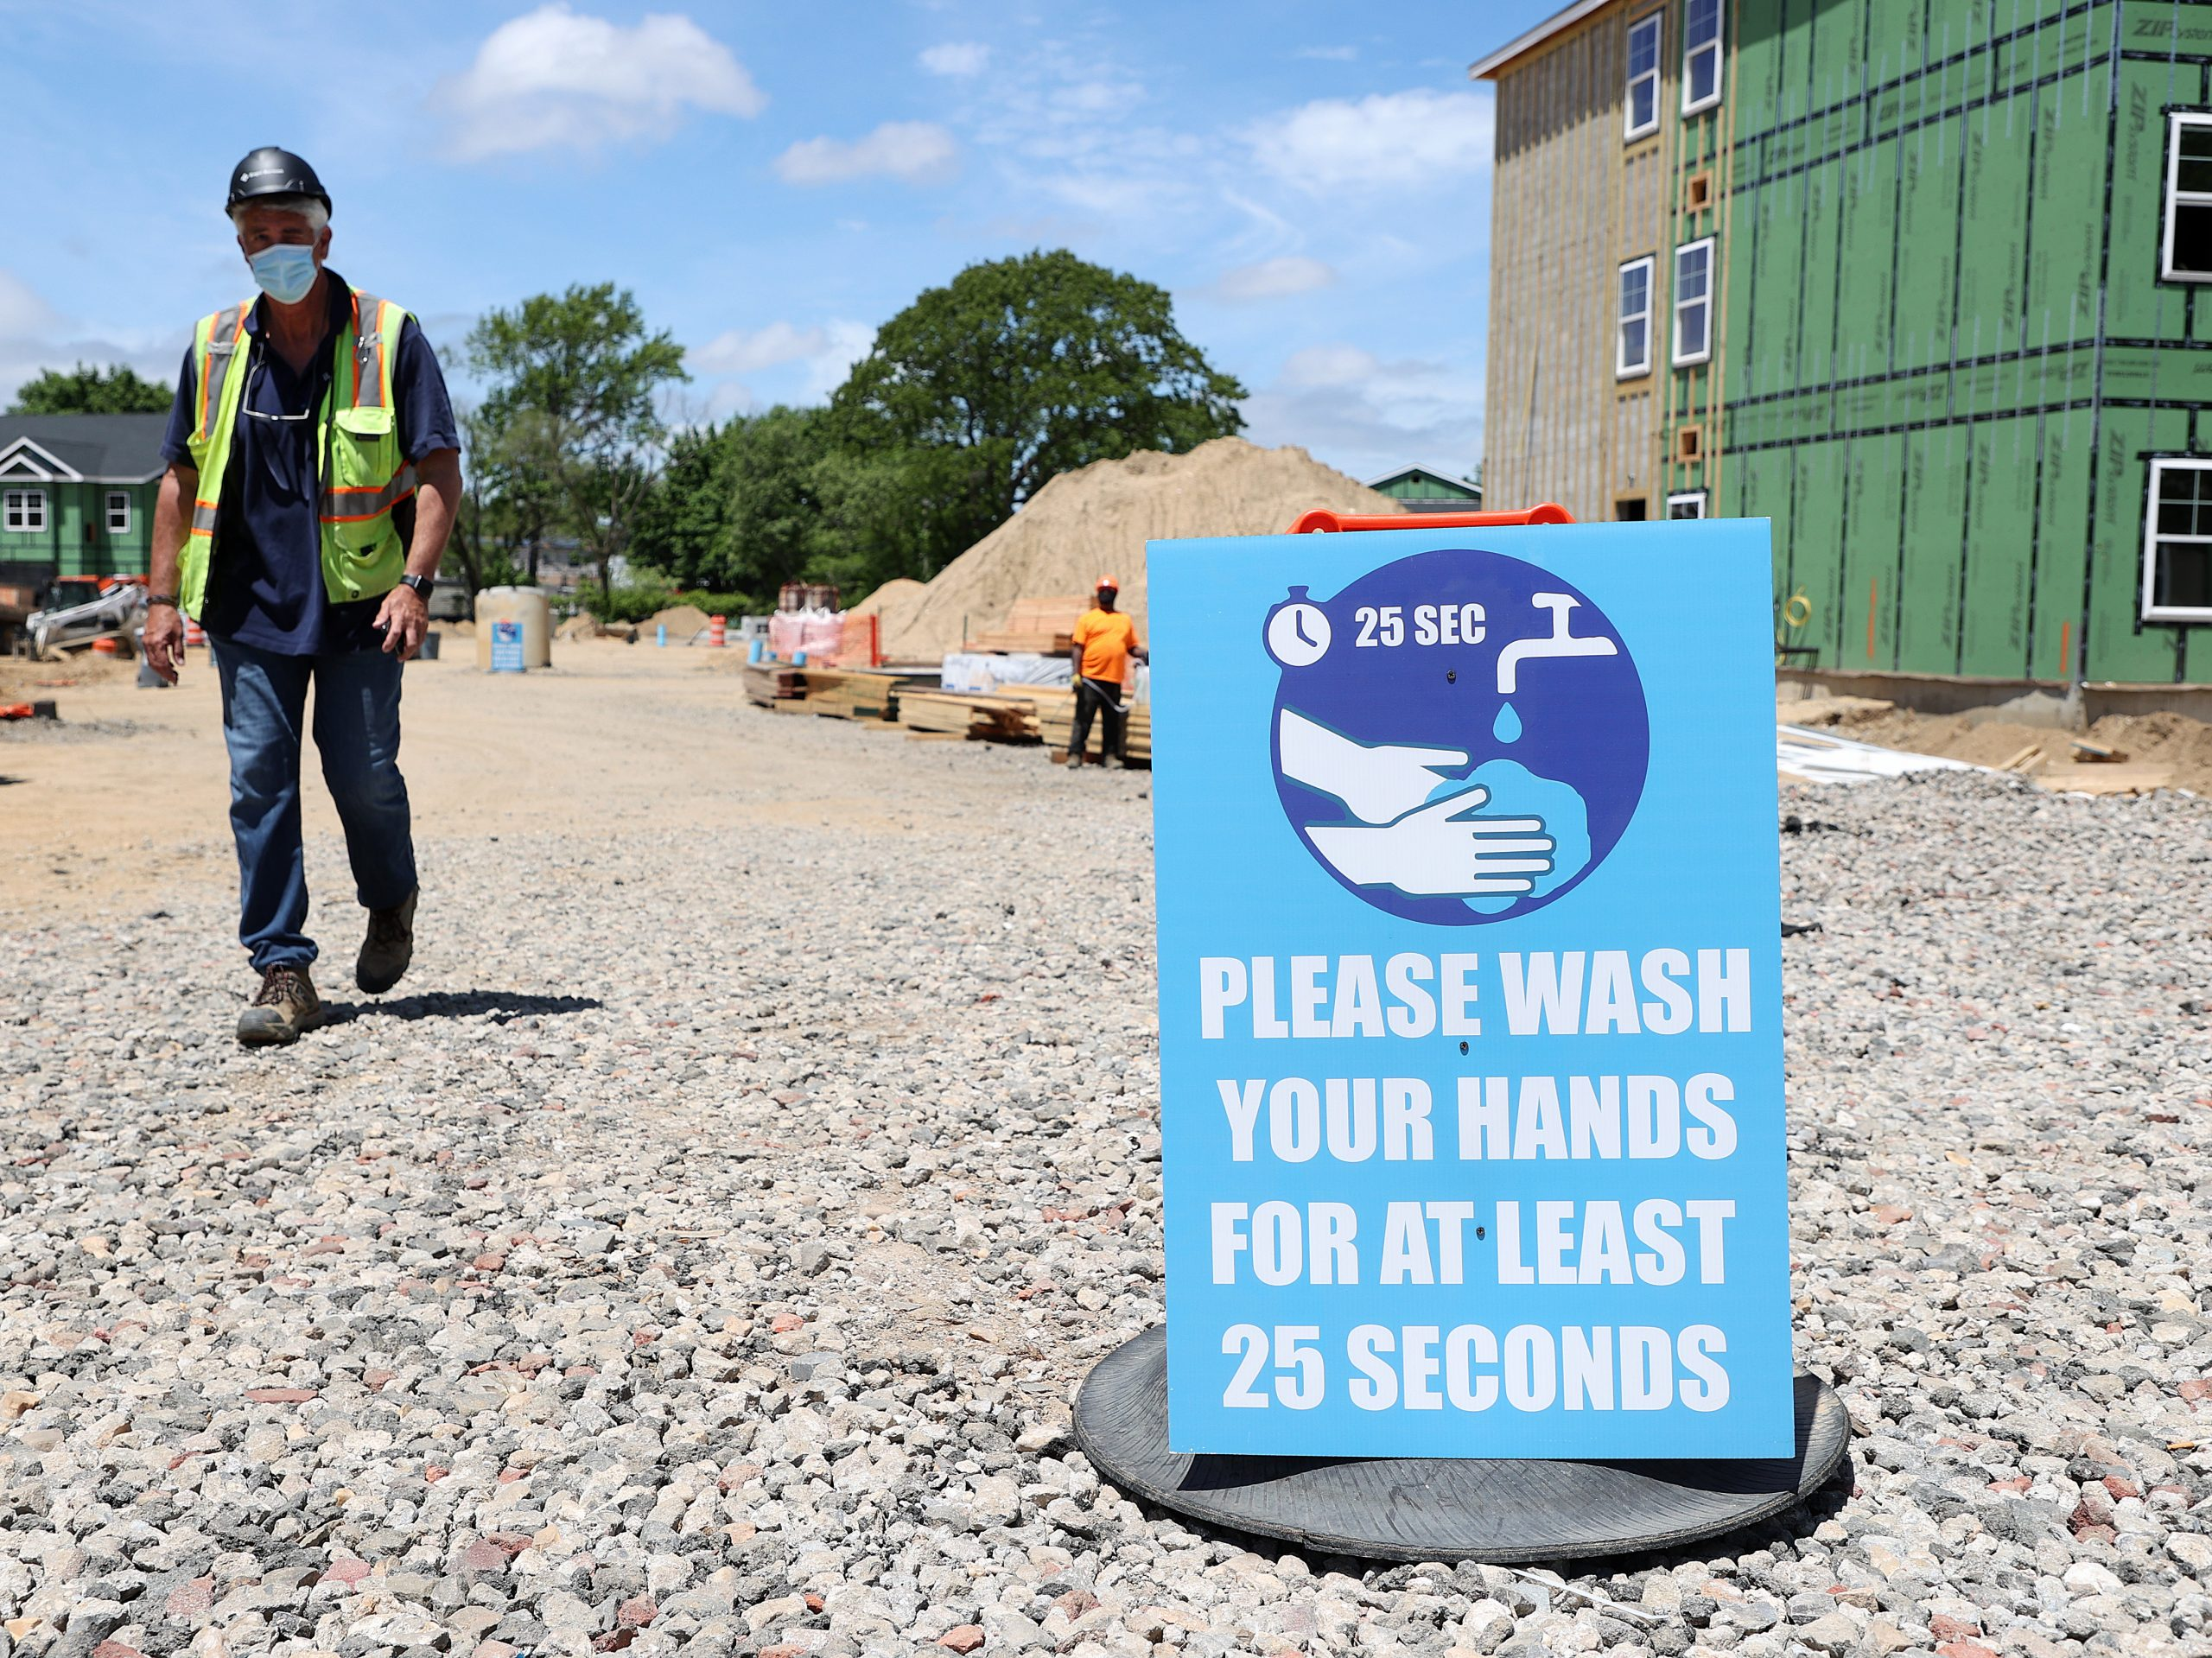 A construction worker walks past a sign advising employees to wash hands. (Photo by Al Bello/Getty Images)